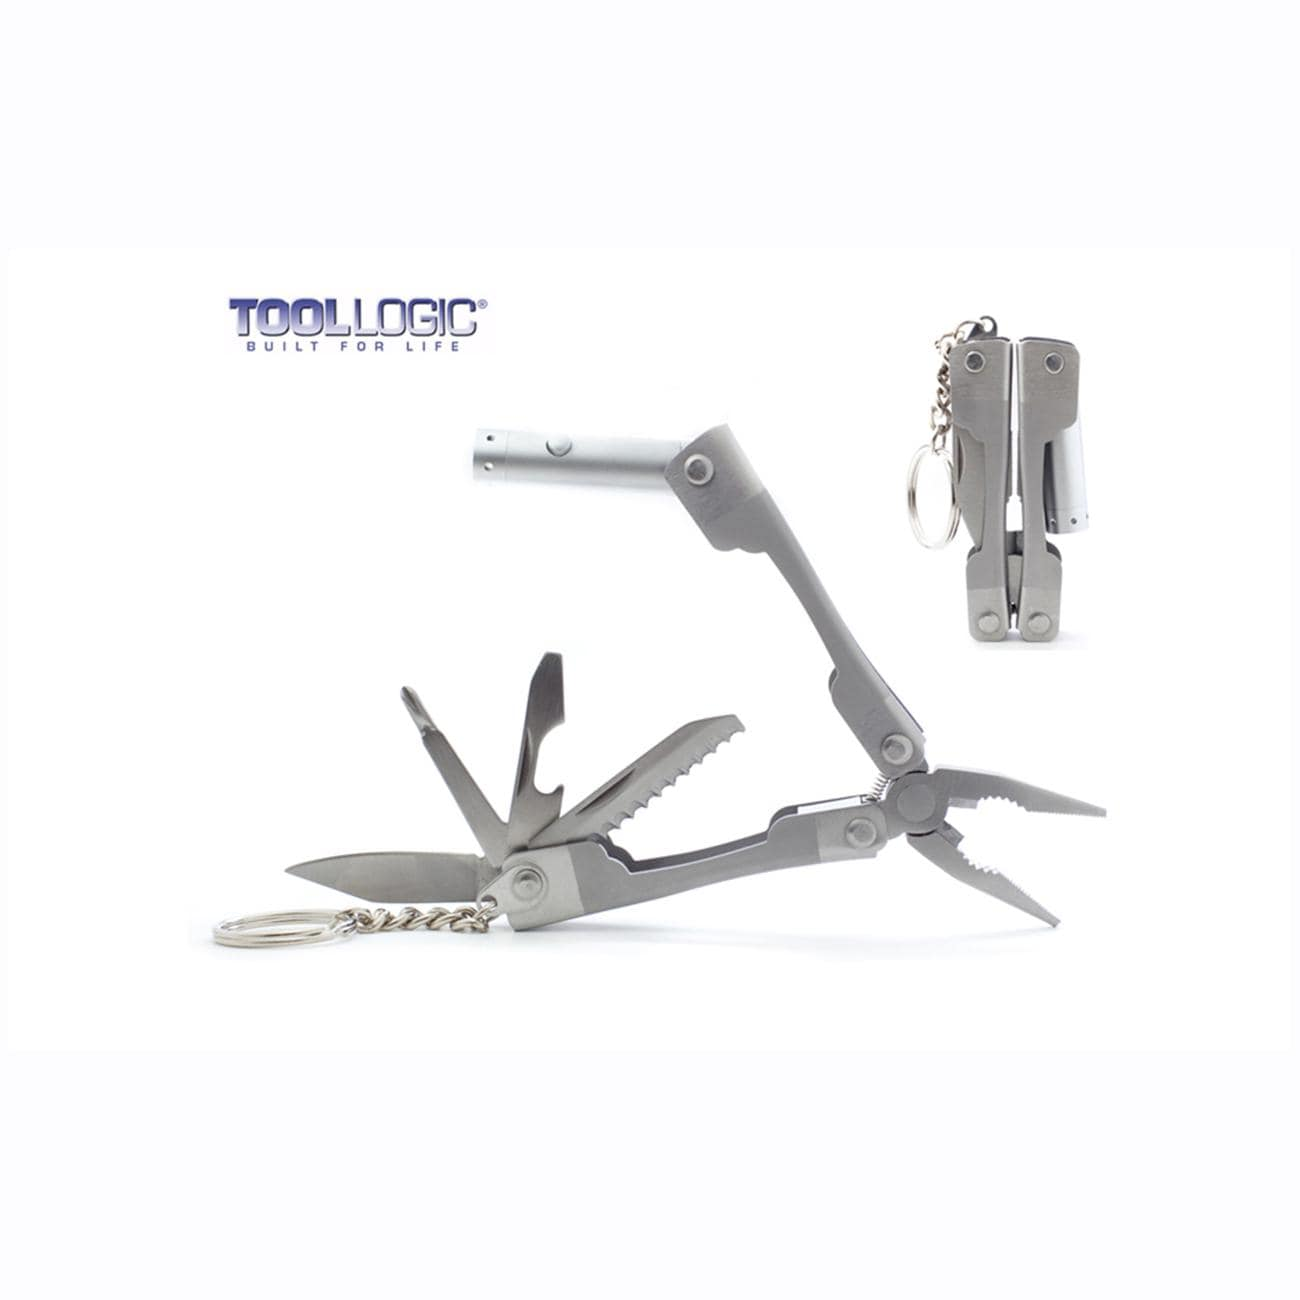 Toologic All-in-one Multi-tool Pocket Knife